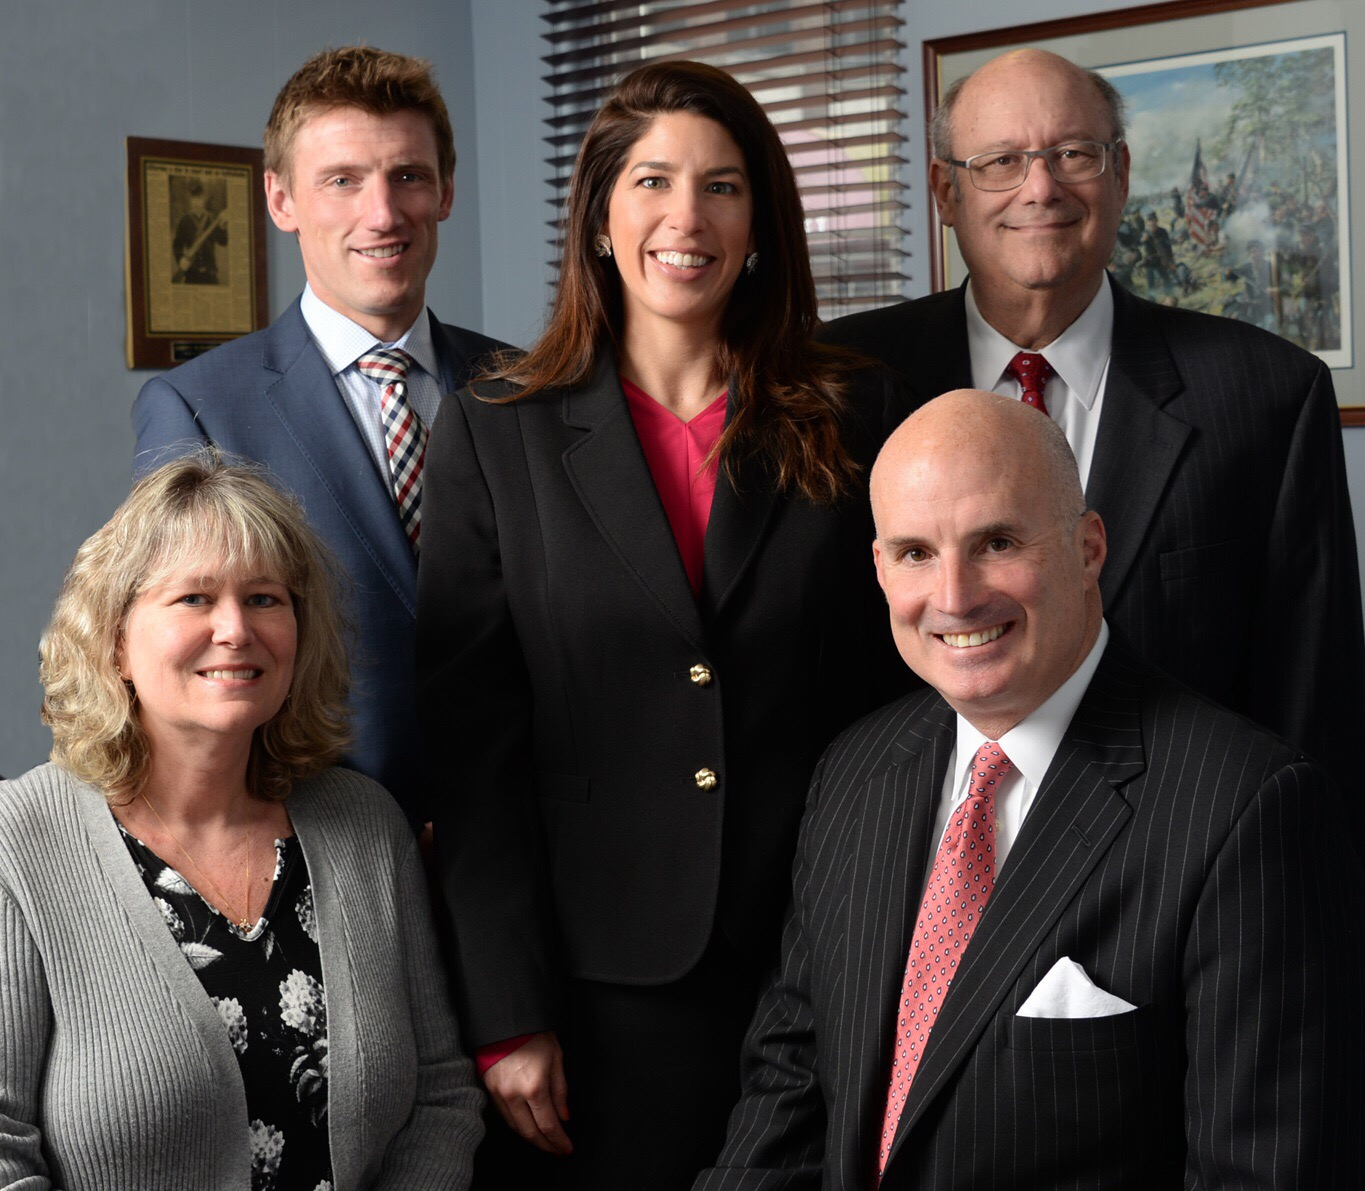 Experienced PA Criminal Defense Lawyers and Personal Injury